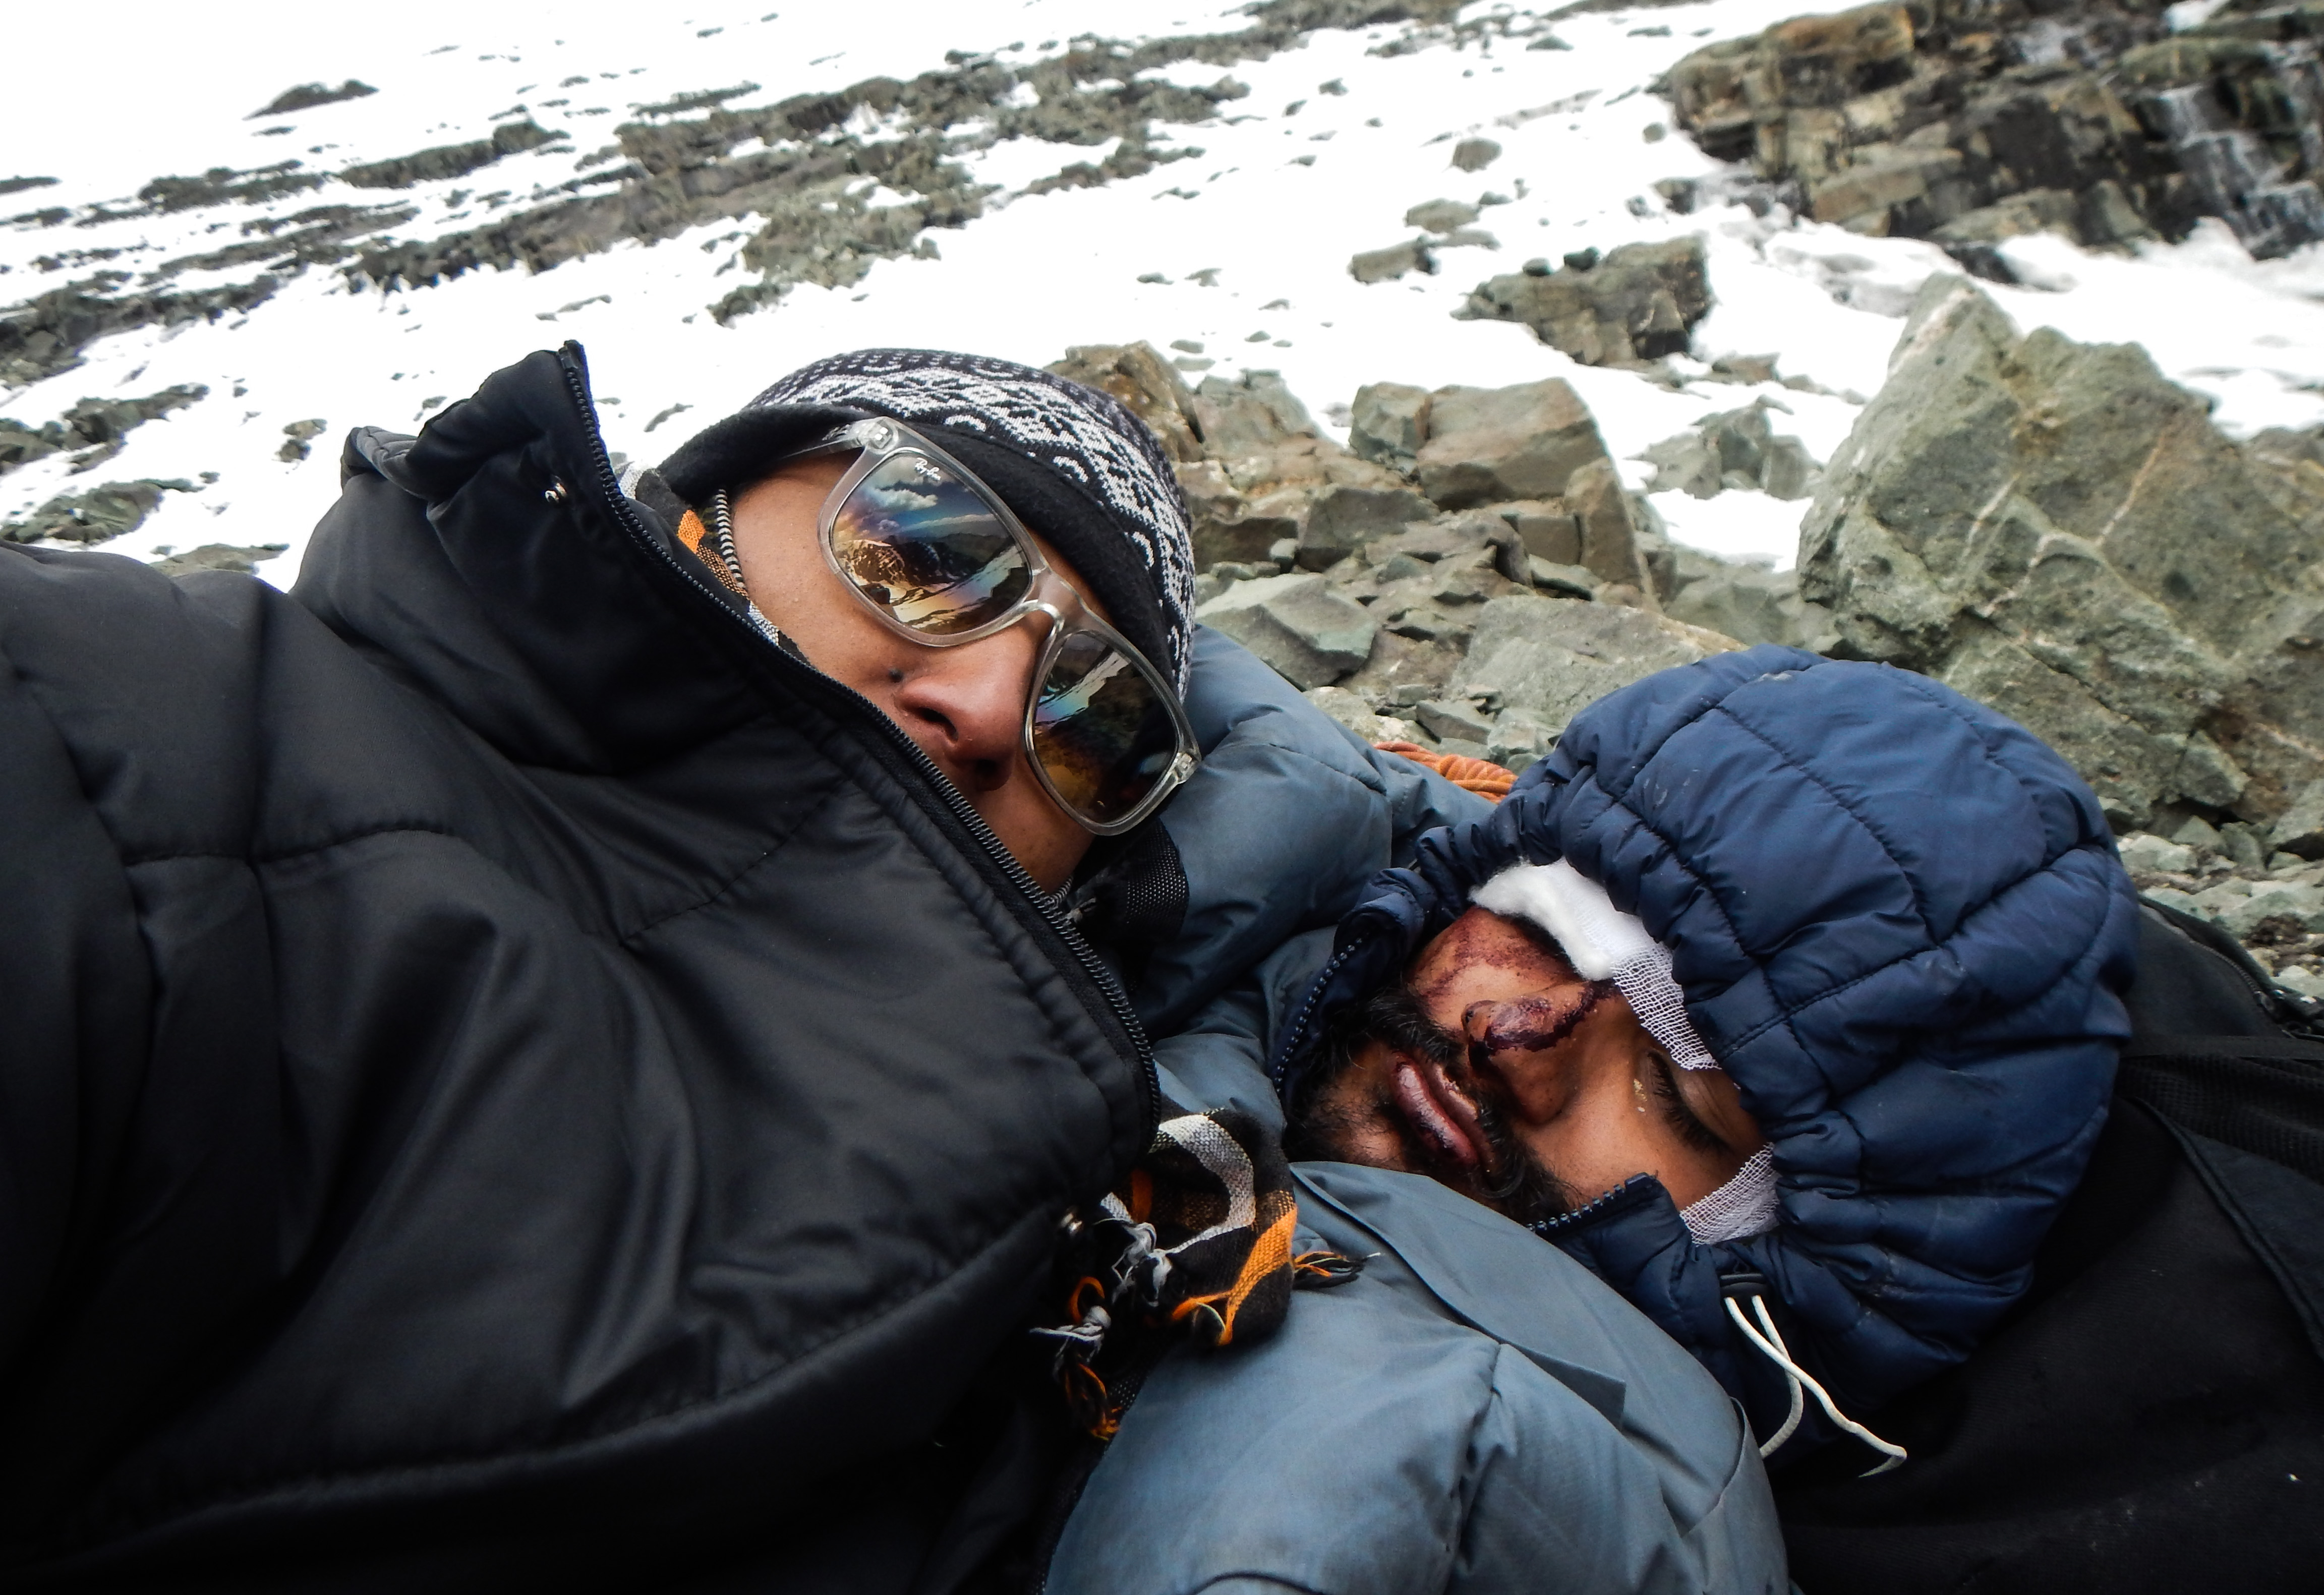 Bidhan (Left) with an injured Udesh while they were waiting for the rescue team. (Source: Bidhan Shrestha)